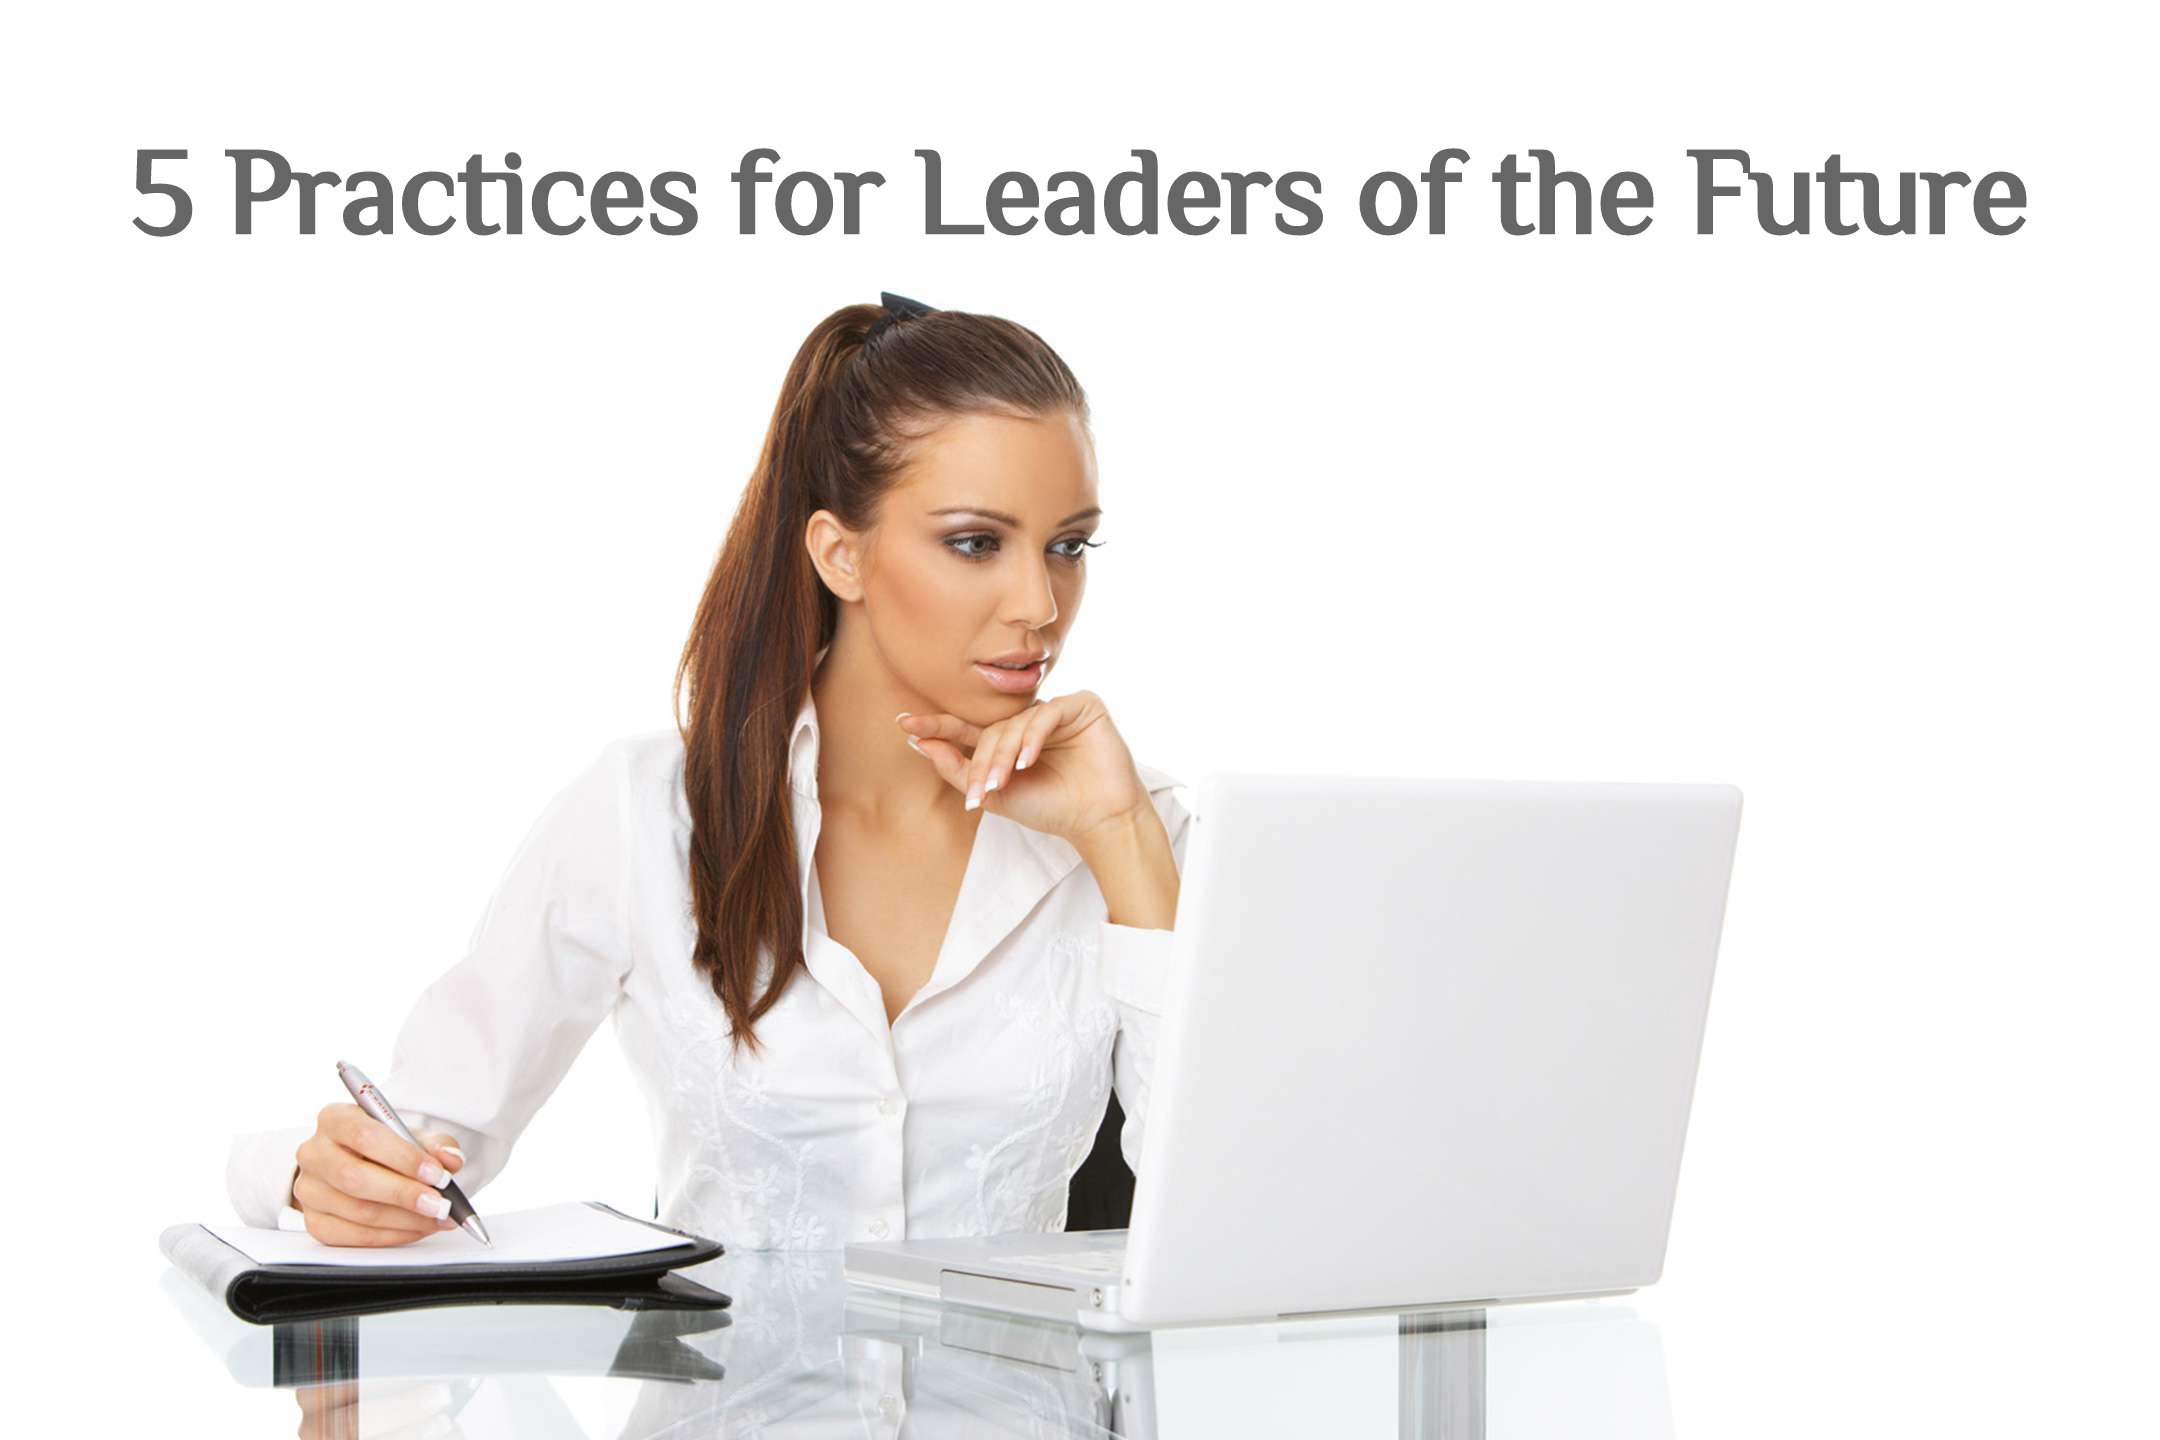 5 Practices for Leaders of Future